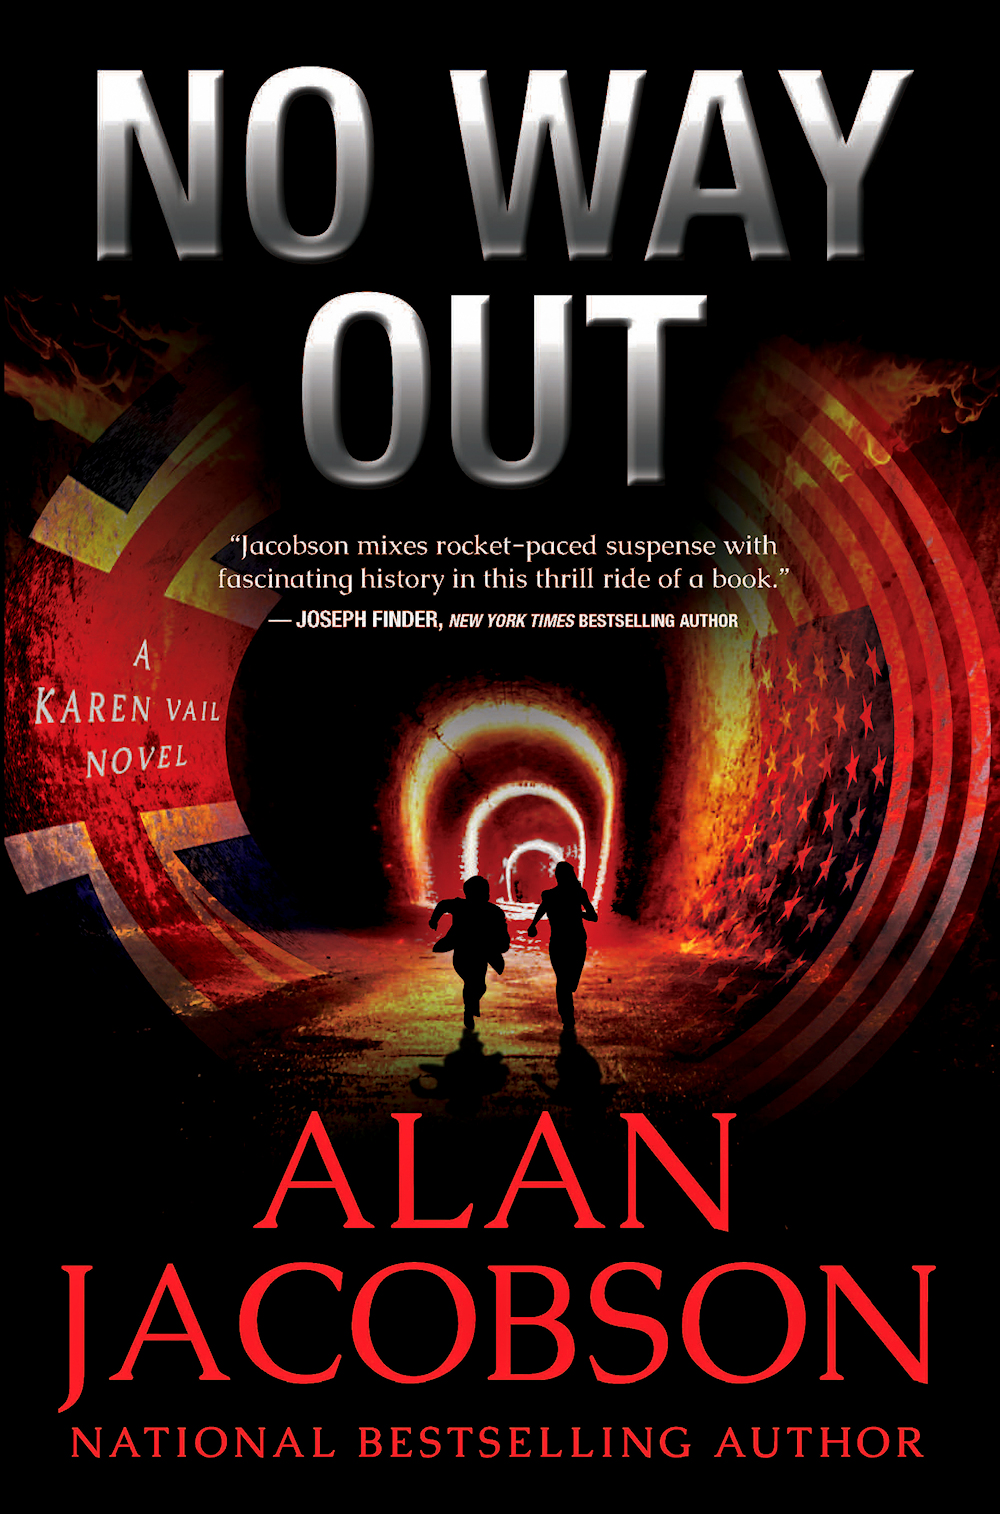 No Way Out | A novel by Alan Jacobson